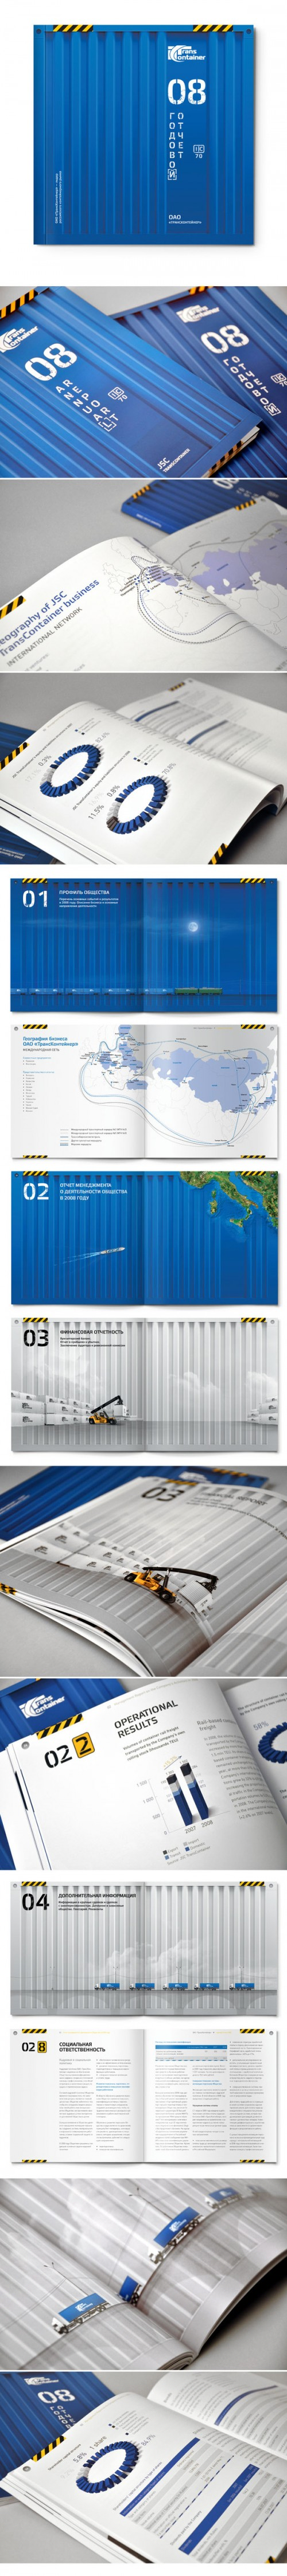 Annual Report Design for Trans Container